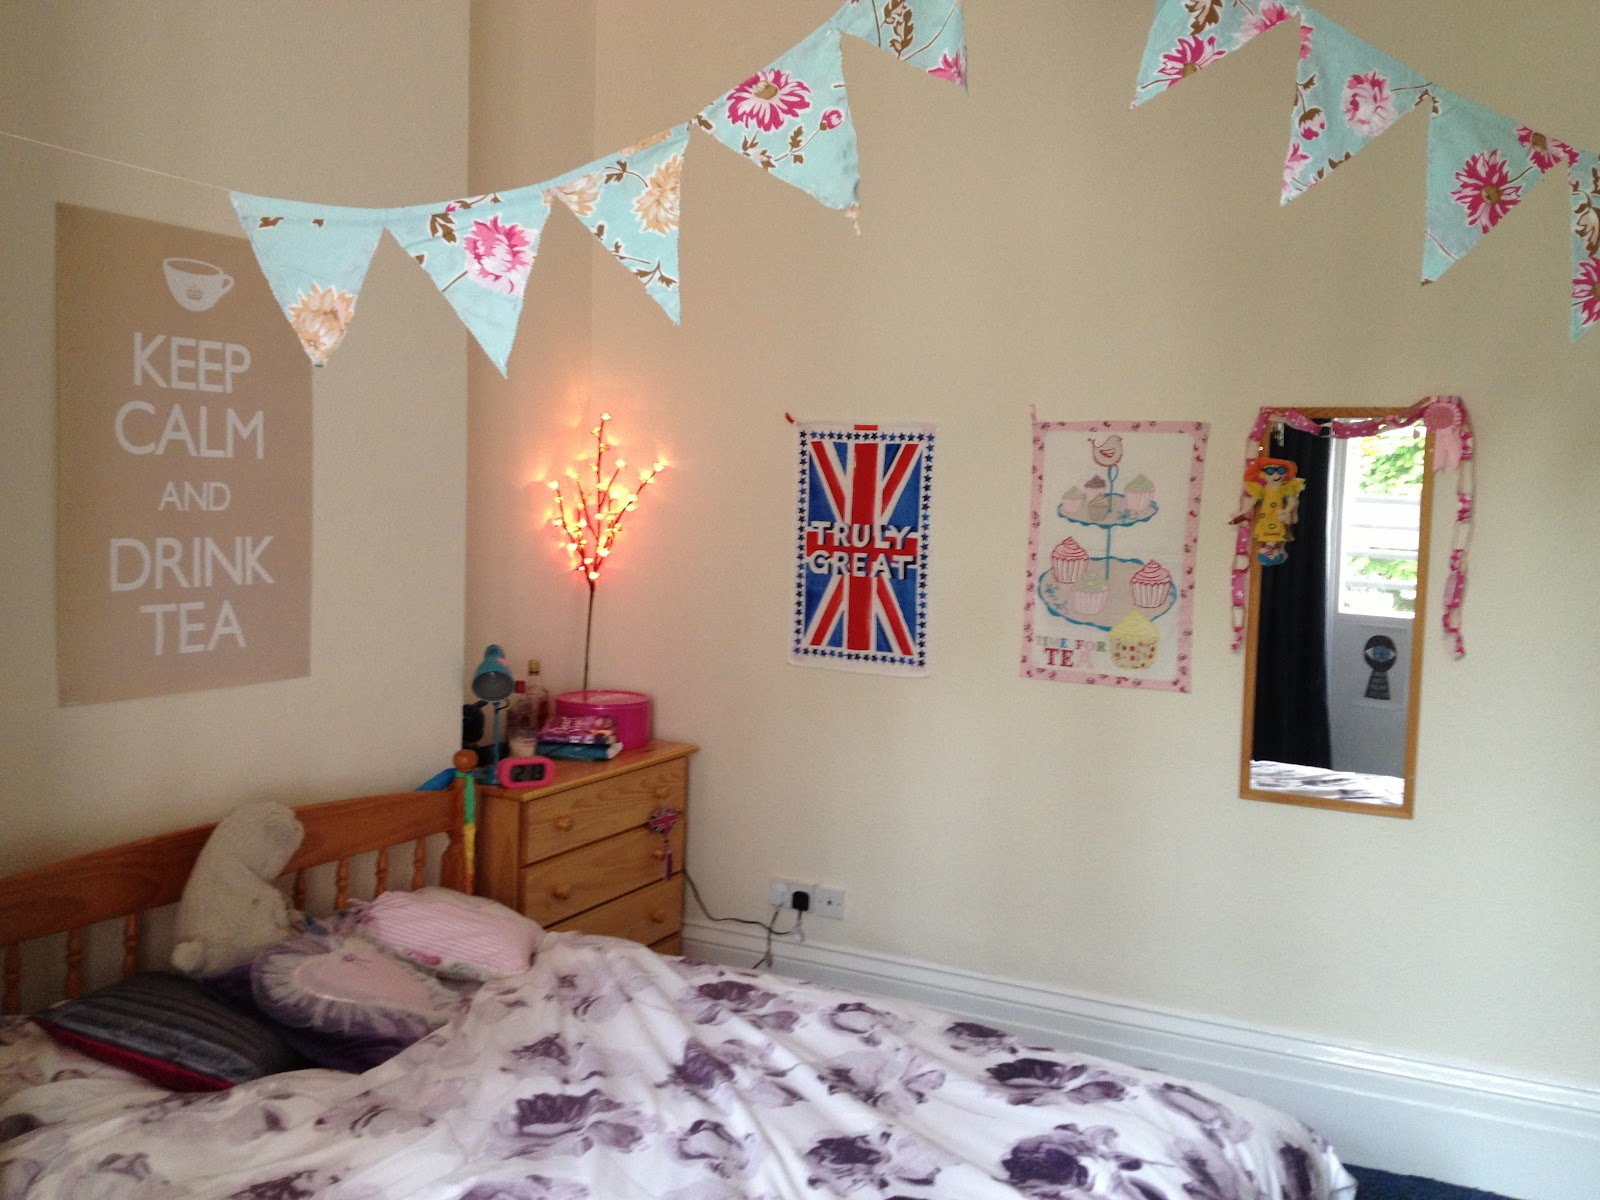 The twenty best ways to decorate your student room at uni handbags and cupcakes Ideas to decorate your house